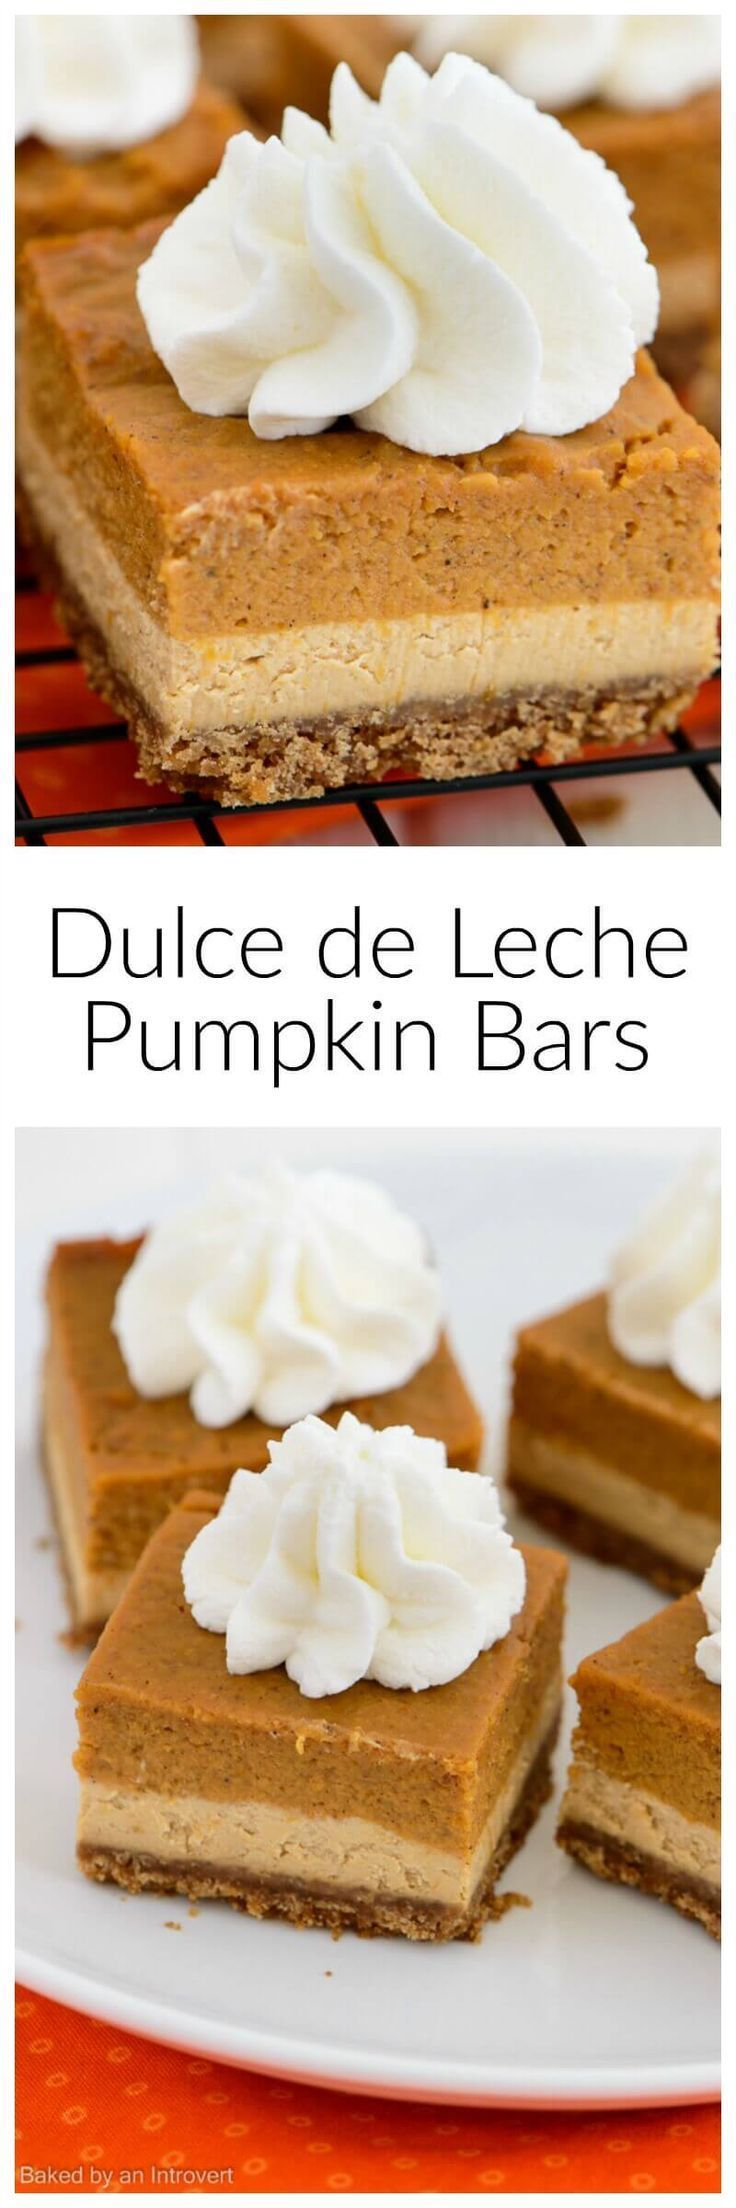 This recipe for Dulce de Leche Pumpkin Bars gives you the flavor of a ...